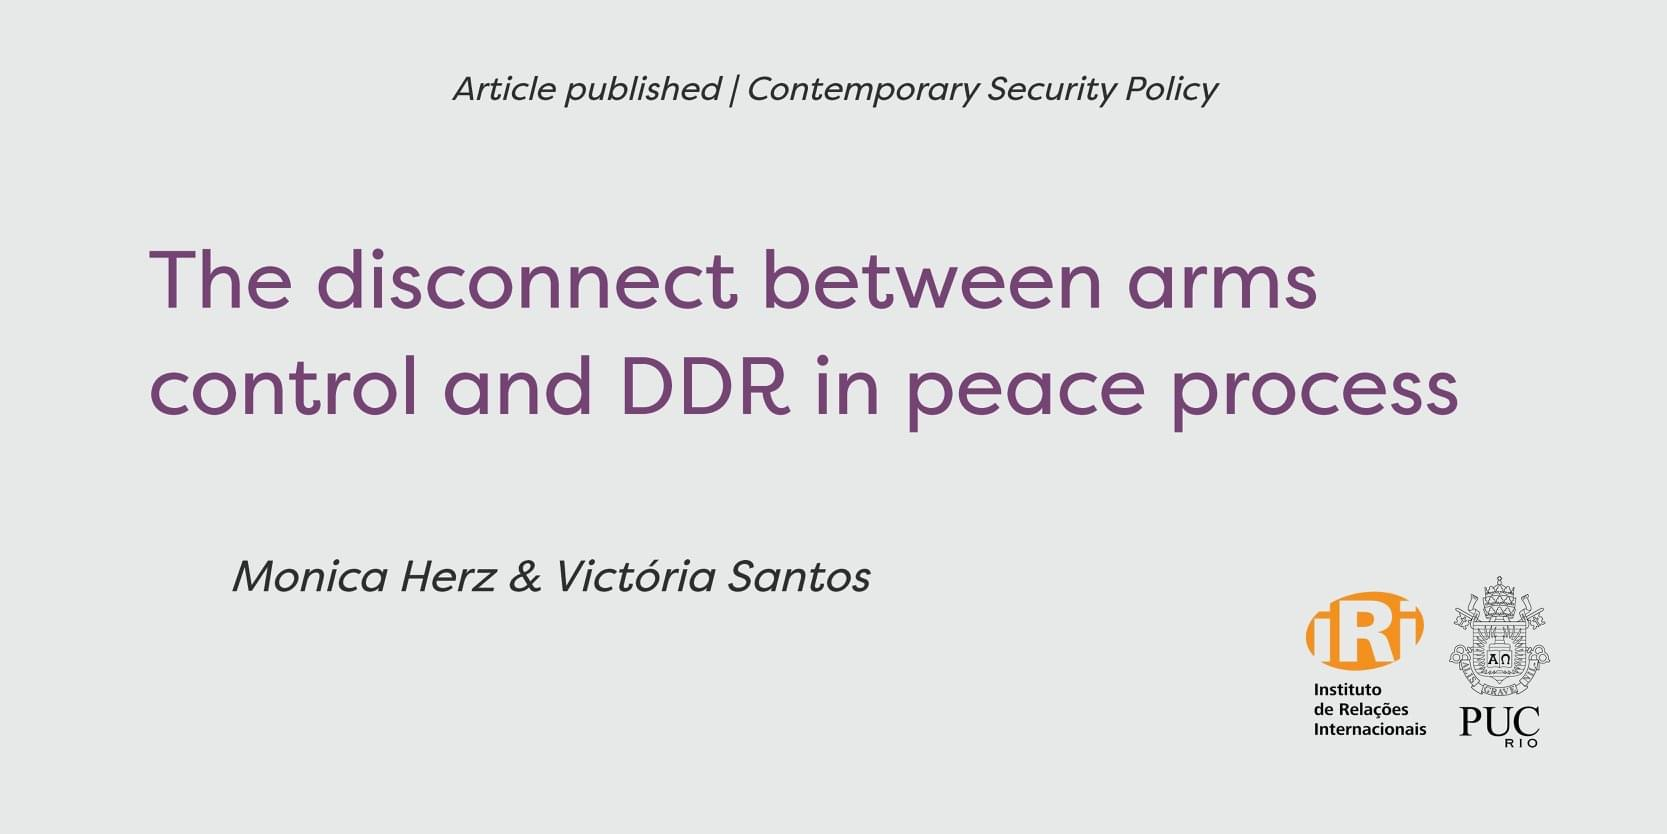 The disconnect between arms control and DDR in peace processes